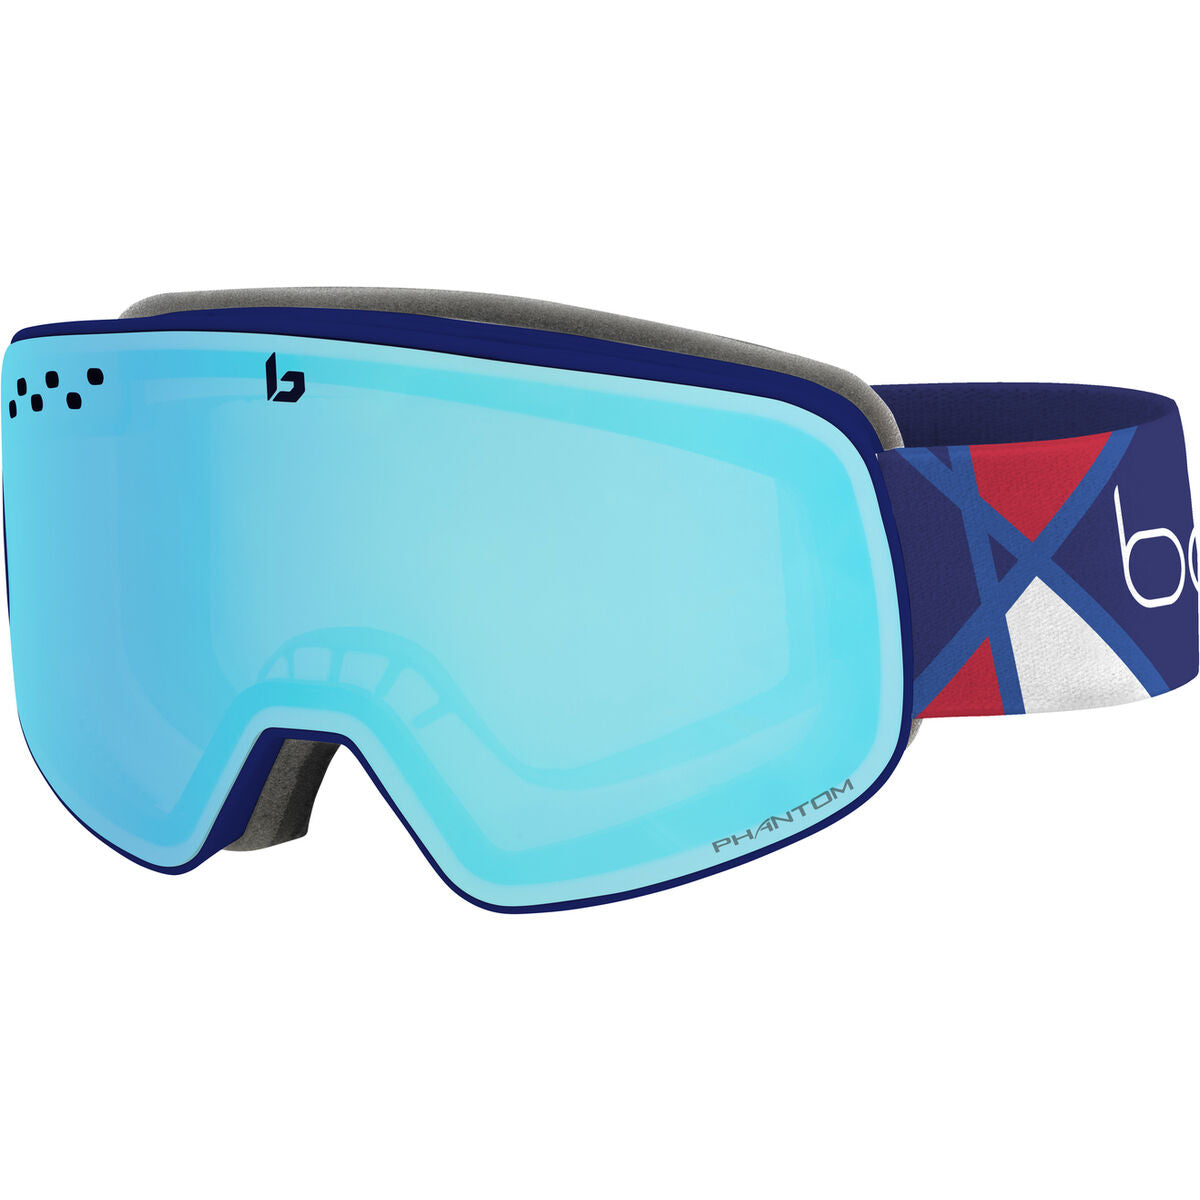 Bolle Nevada Goggles  Alexis Pinturault Signature Series One Size